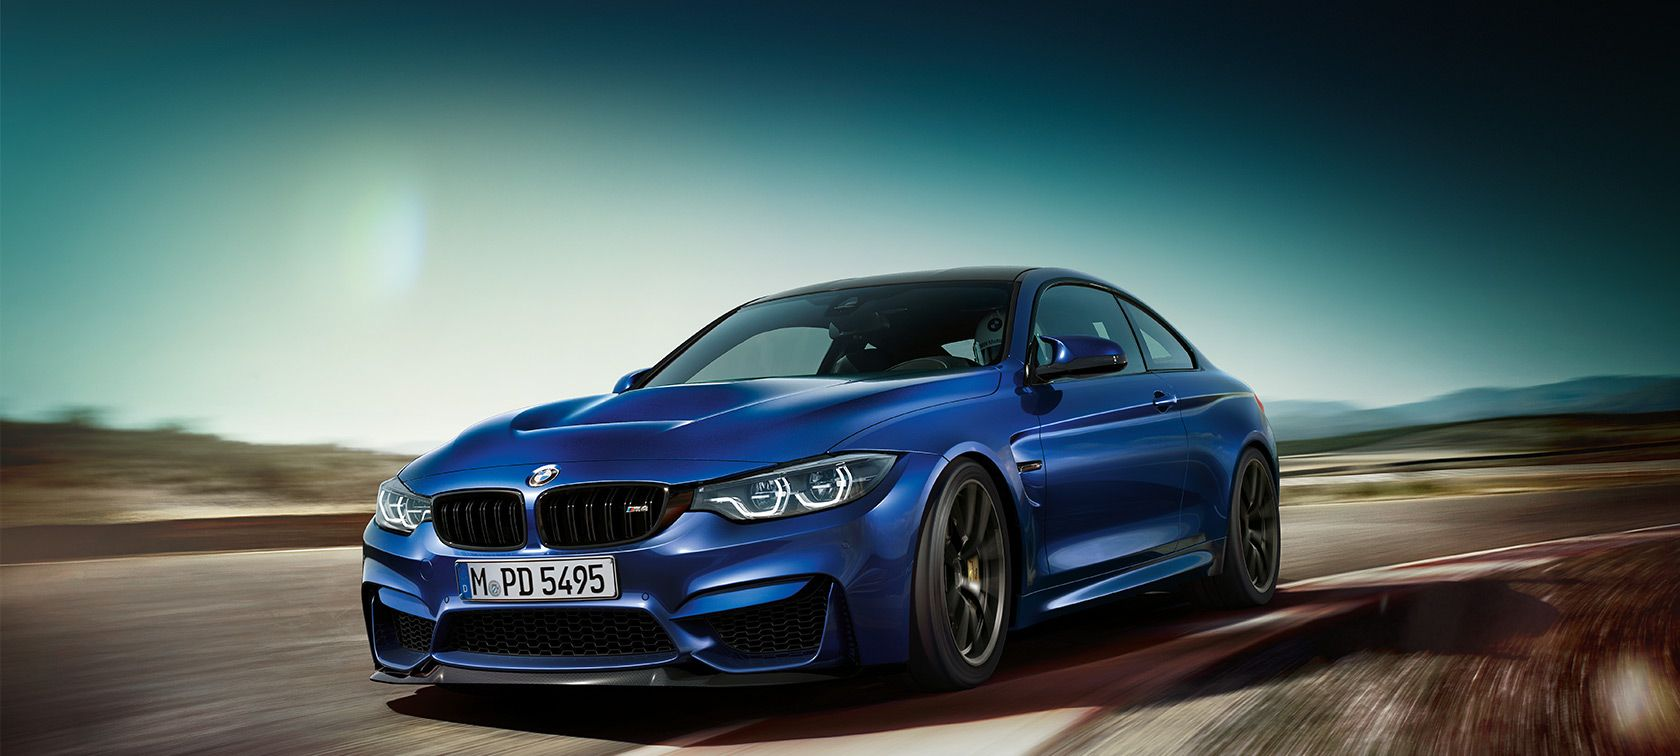 More information on the bmw m4 cs